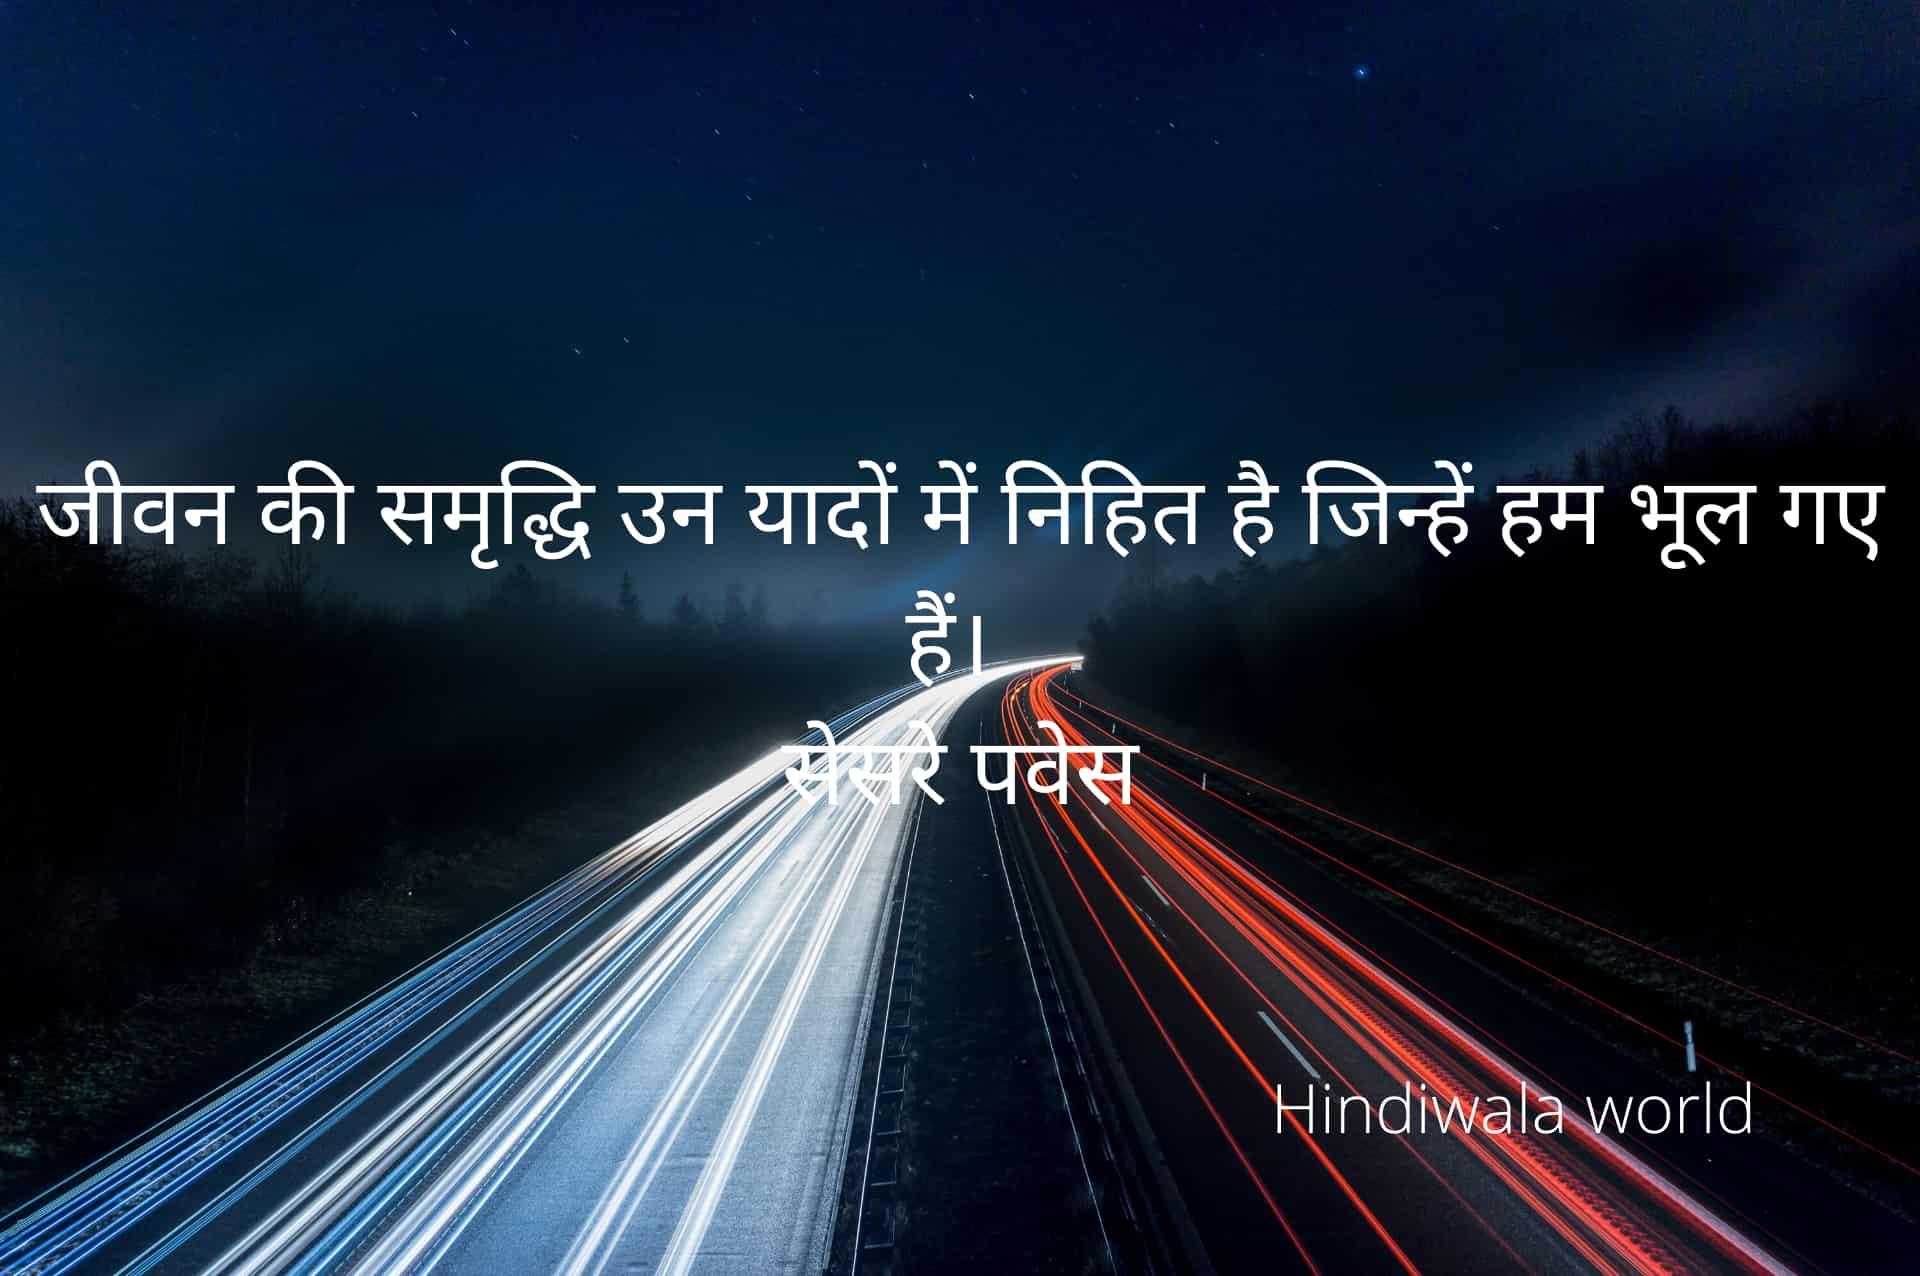 Best Life Quotes In Hindi And English